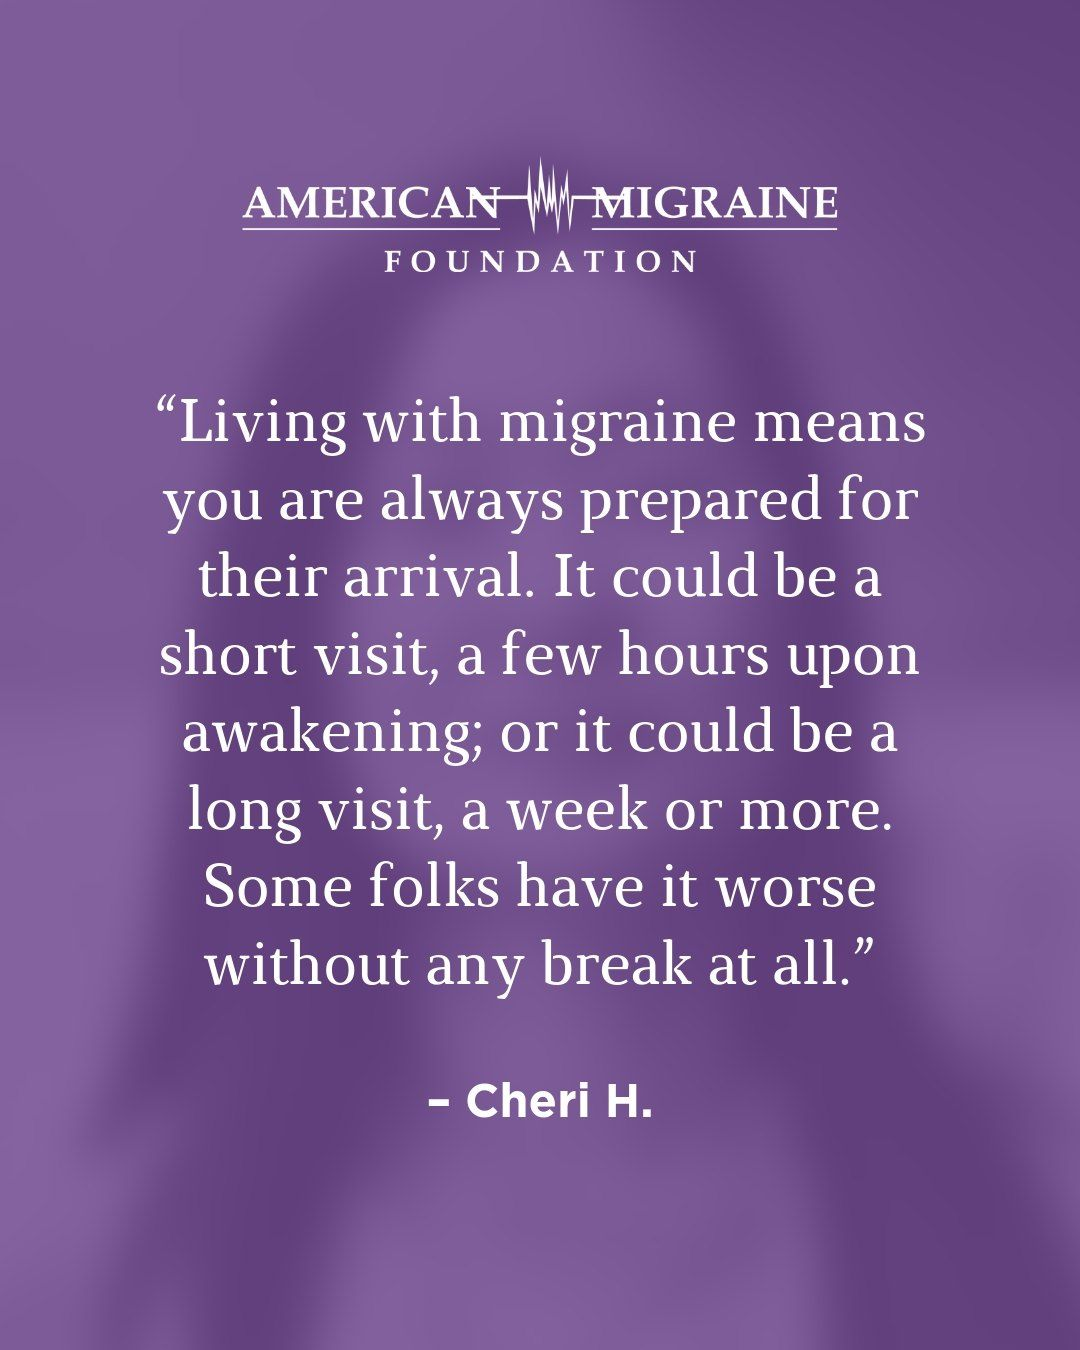 Every person's experience with migraine is different. We